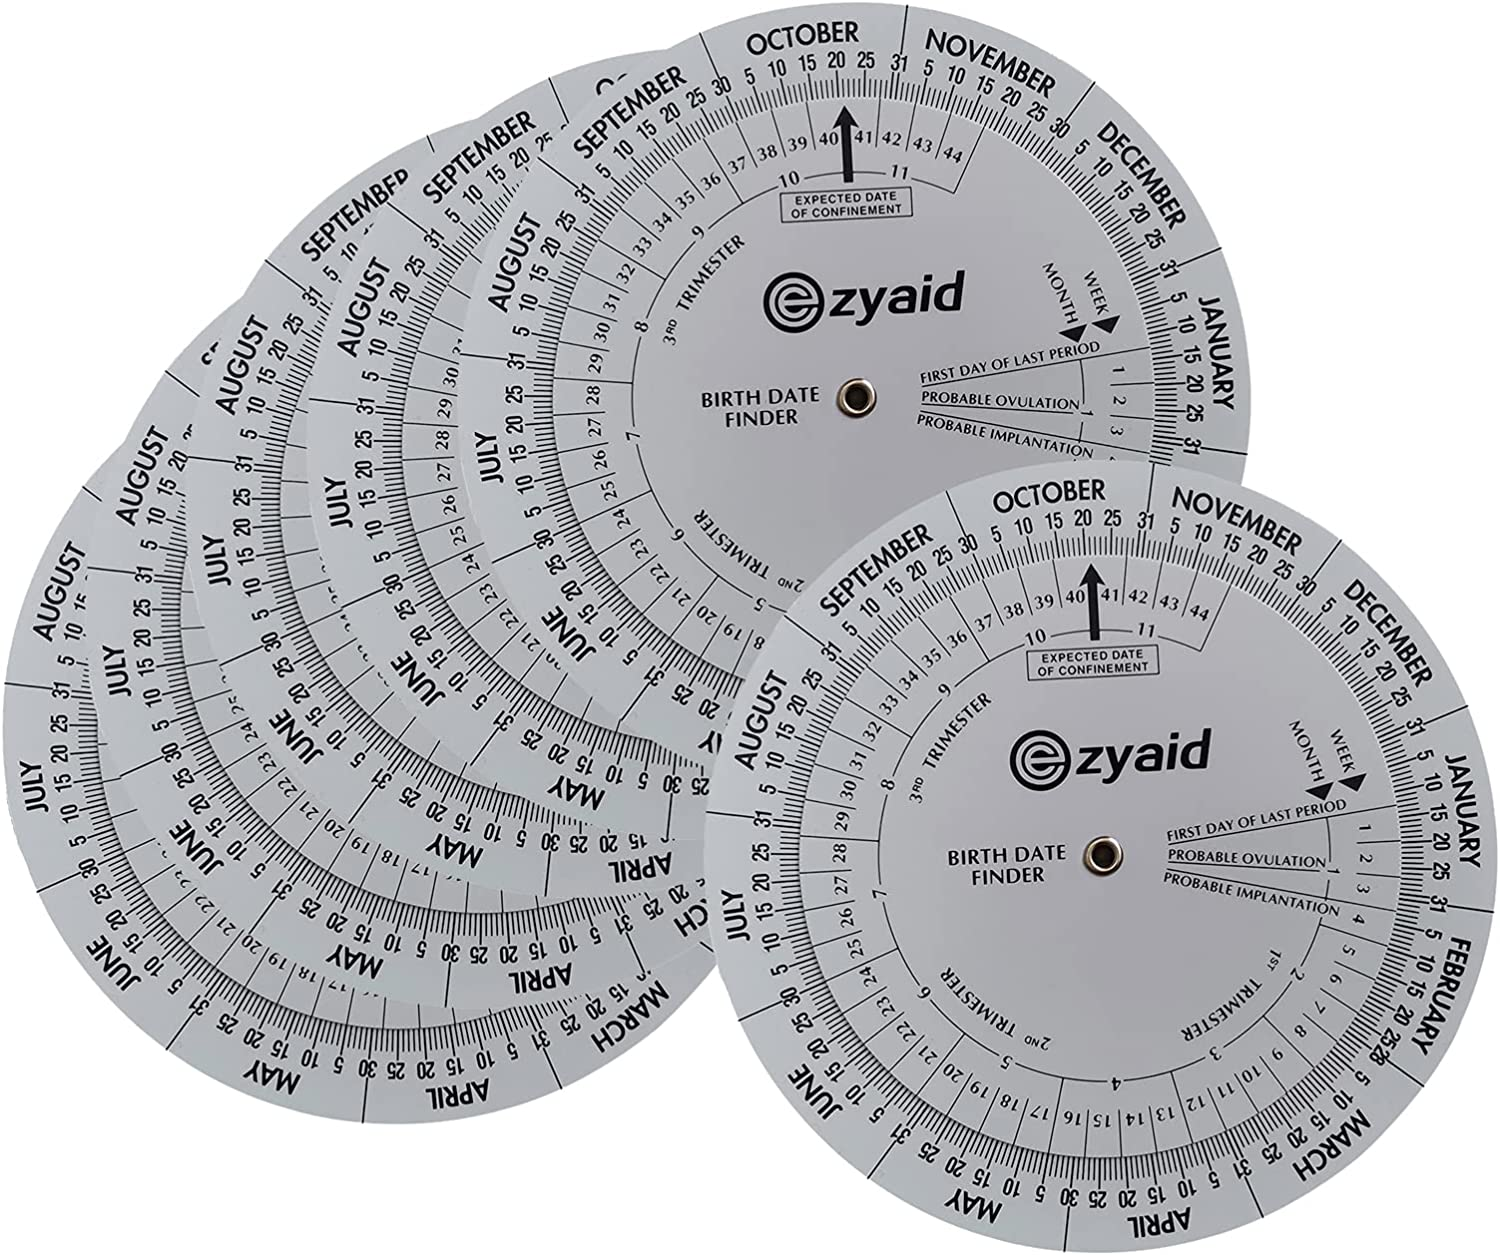 Ezyaid Pregnancy Wheel (6 Packs), Pregnant Due Date Calculator for OB-GYN, Gestation Wheel Calculator for Midwives, Nurses, Patients, and Health Care Providers